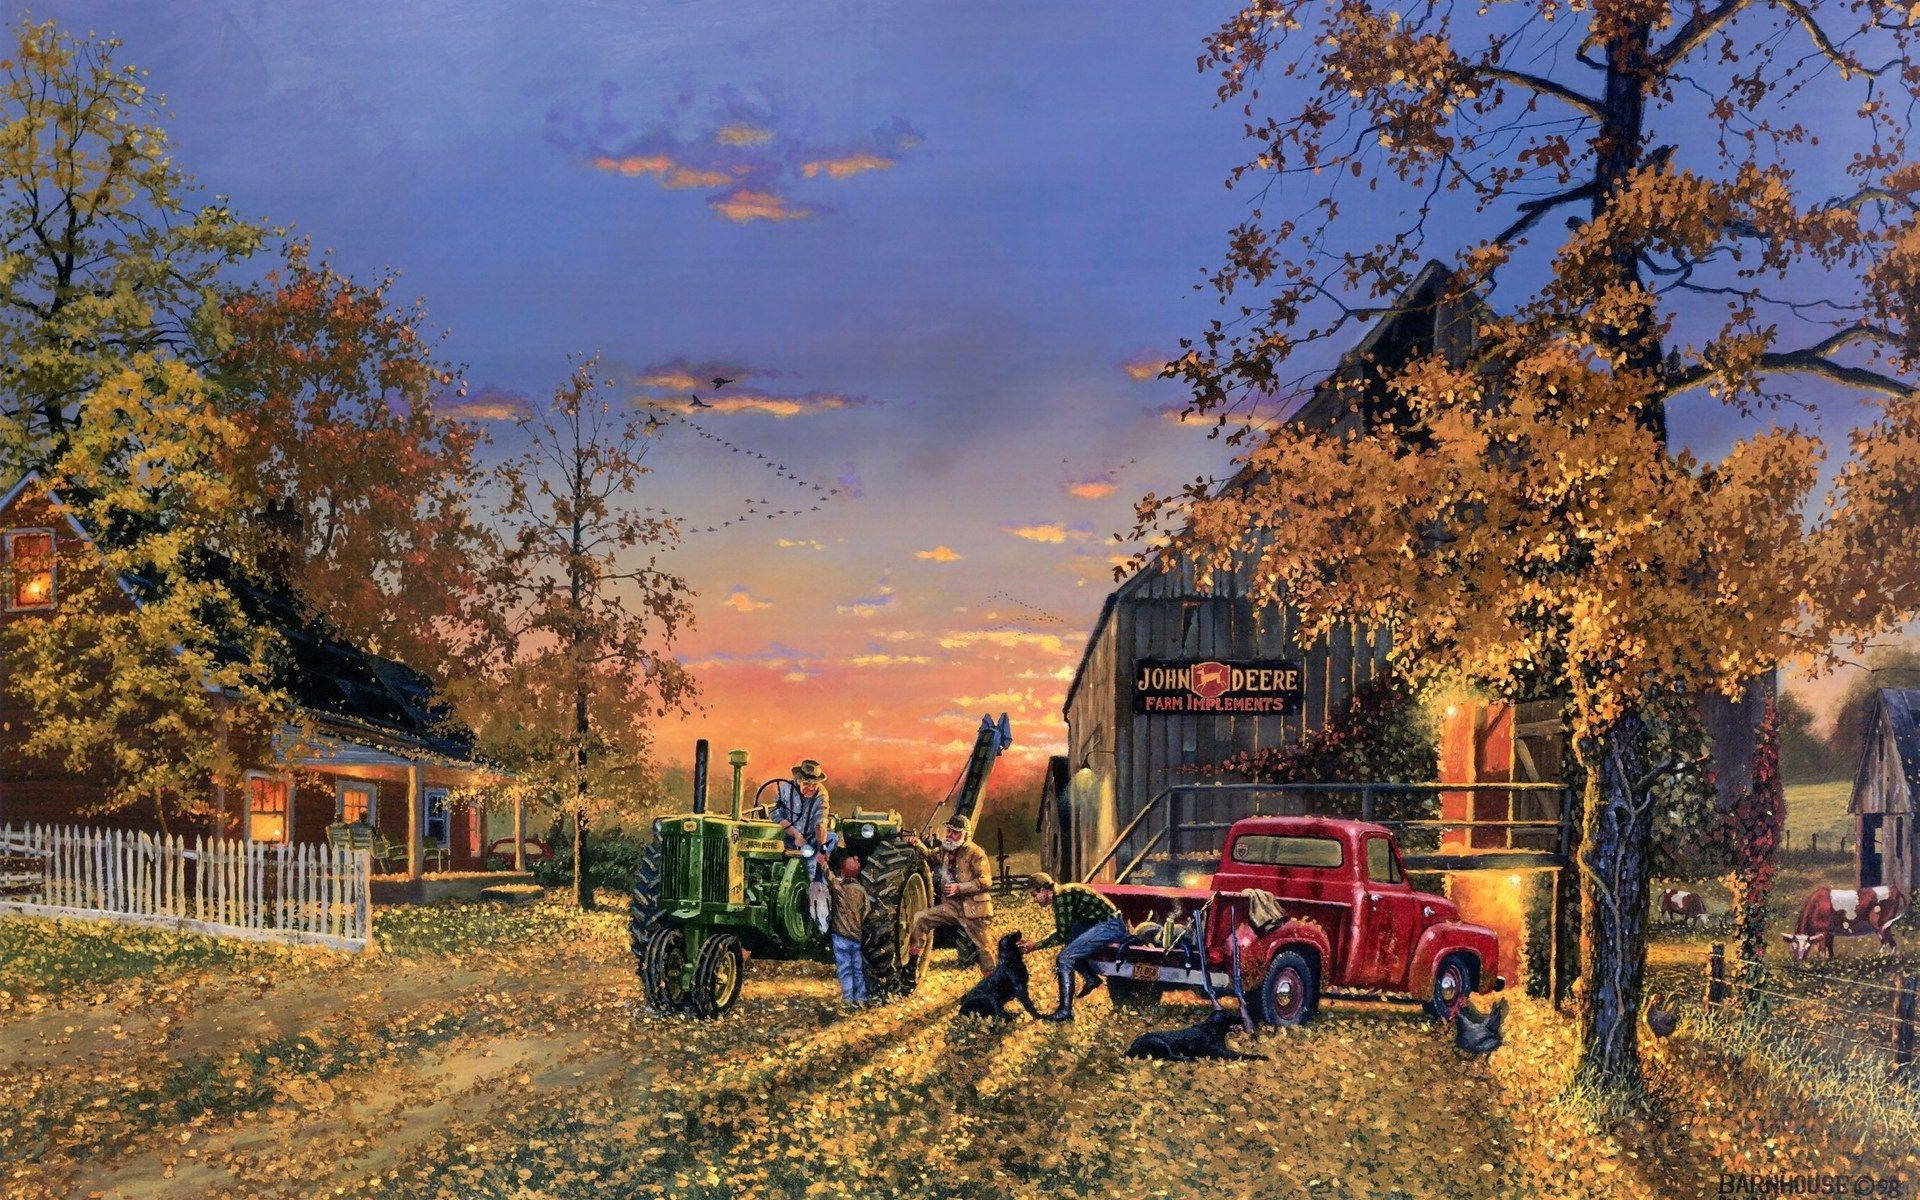 Res: 1920x1200, Dave-Barnhouse Barnhouse paintings country artistic farm vehicles tractor  people landscapes autumn fall seasons holidays thanksgiving wallpaper  background